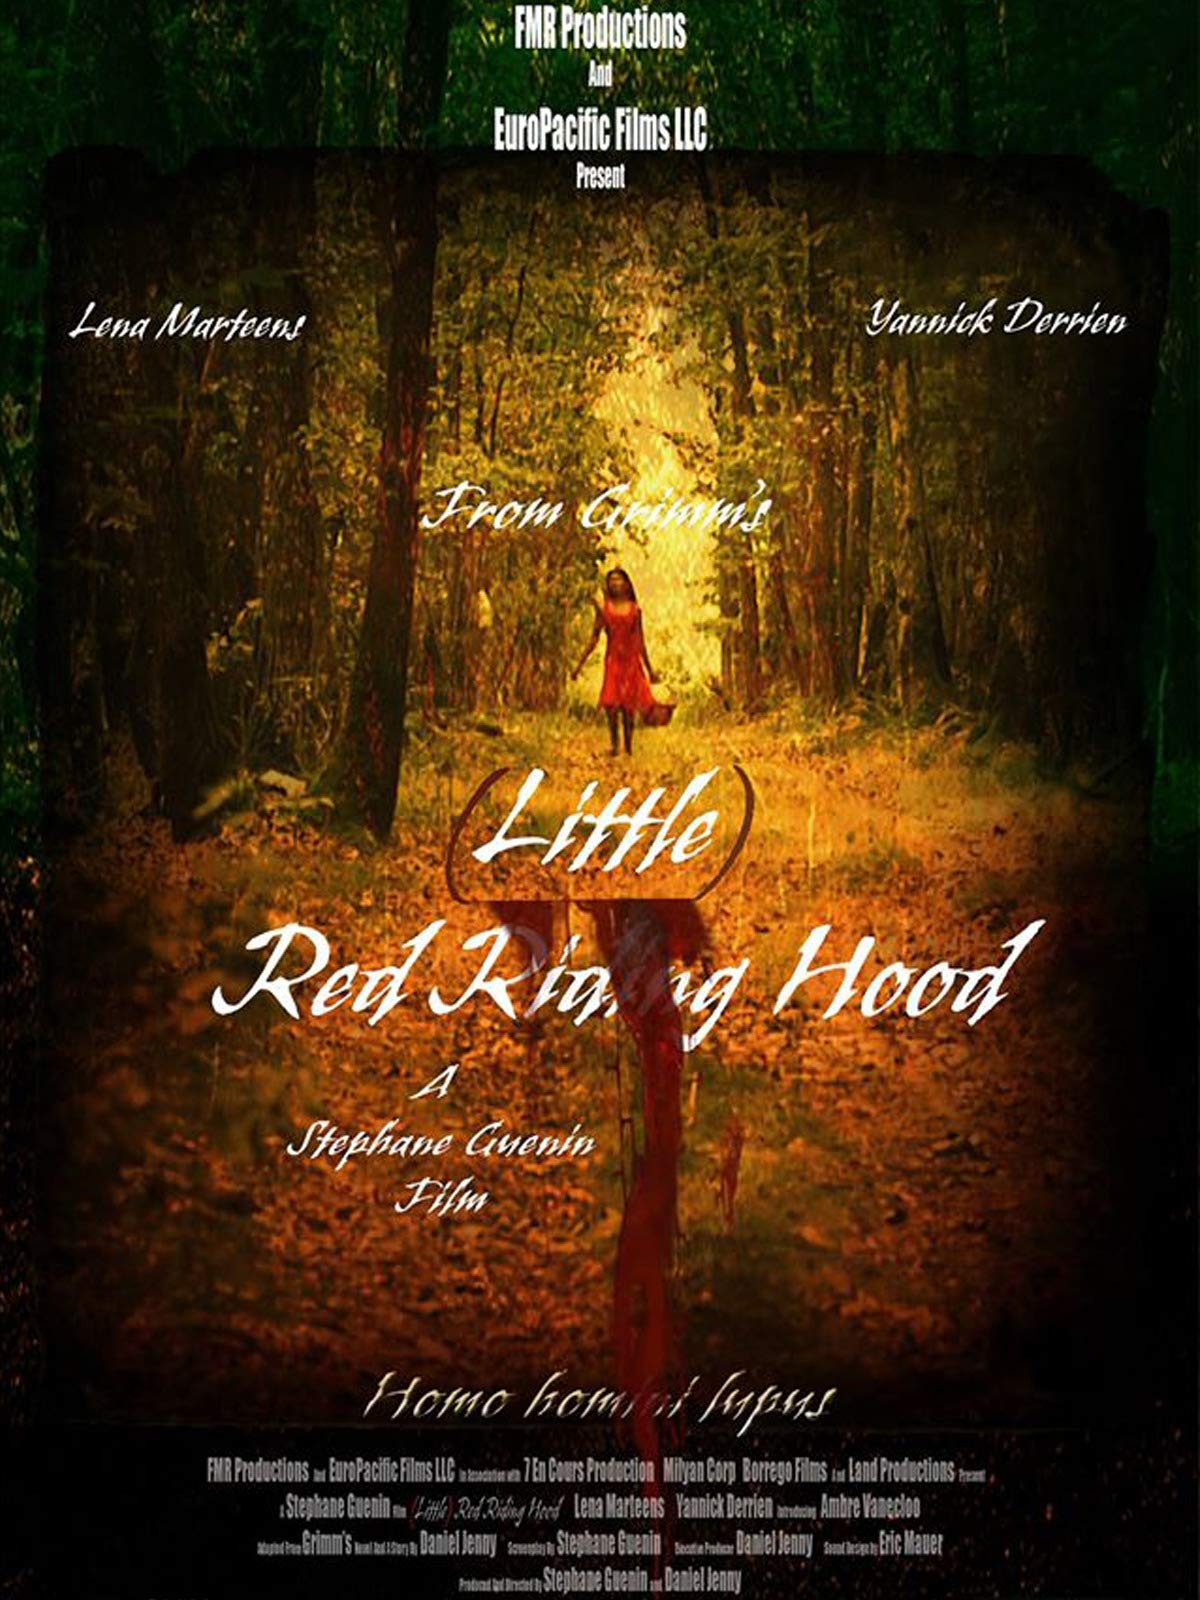 (Little) Red Riding Hood